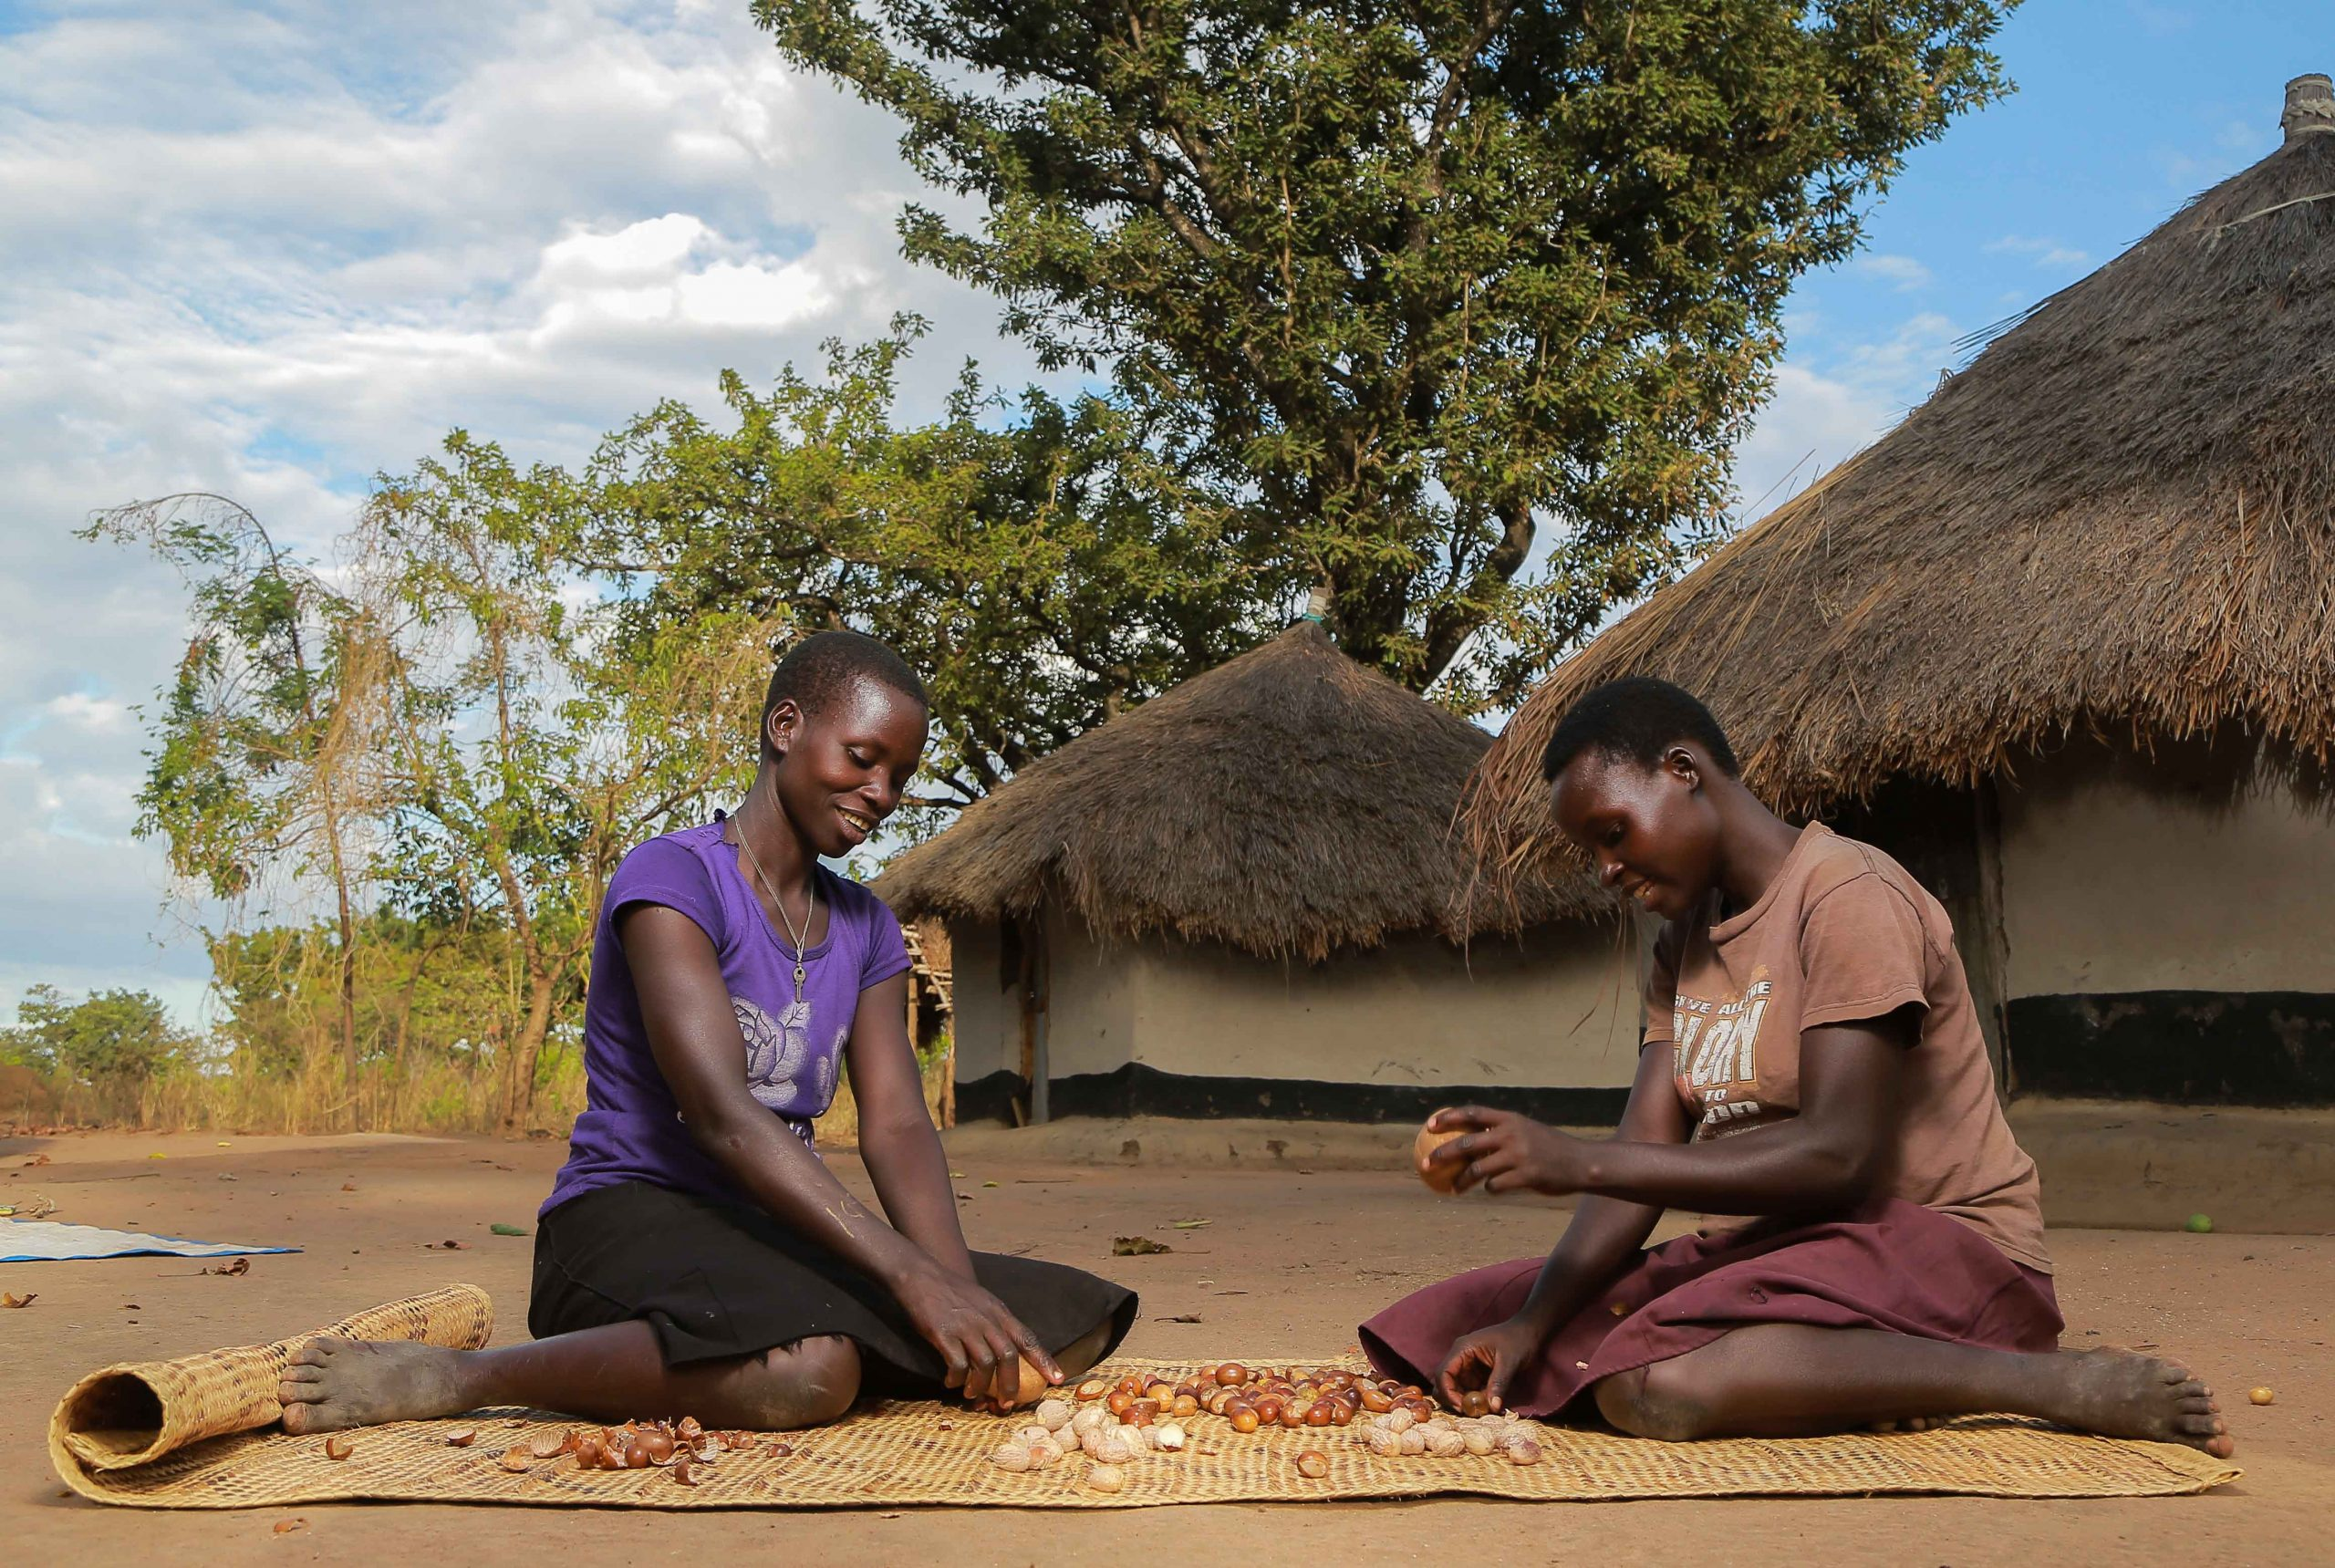 Unshelling shea nuts by hand